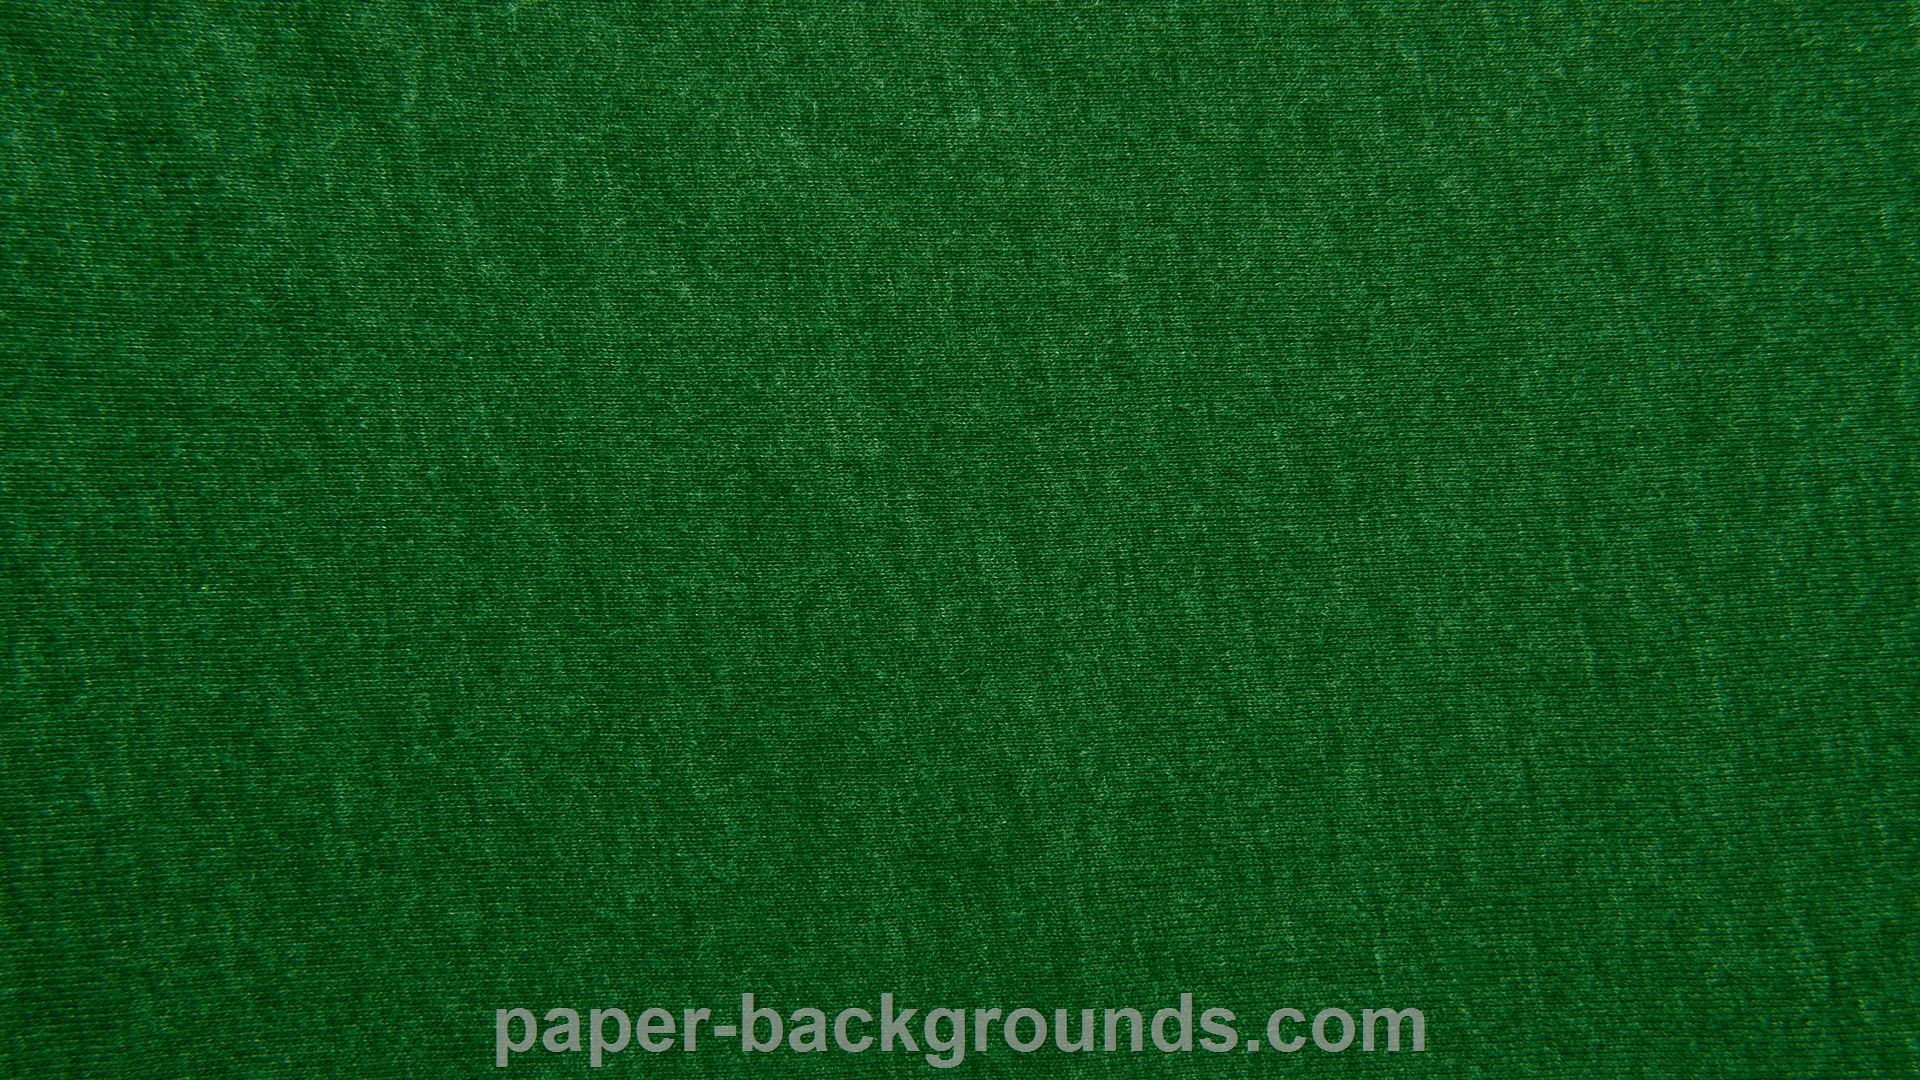 Green Fabric Texture Background HD